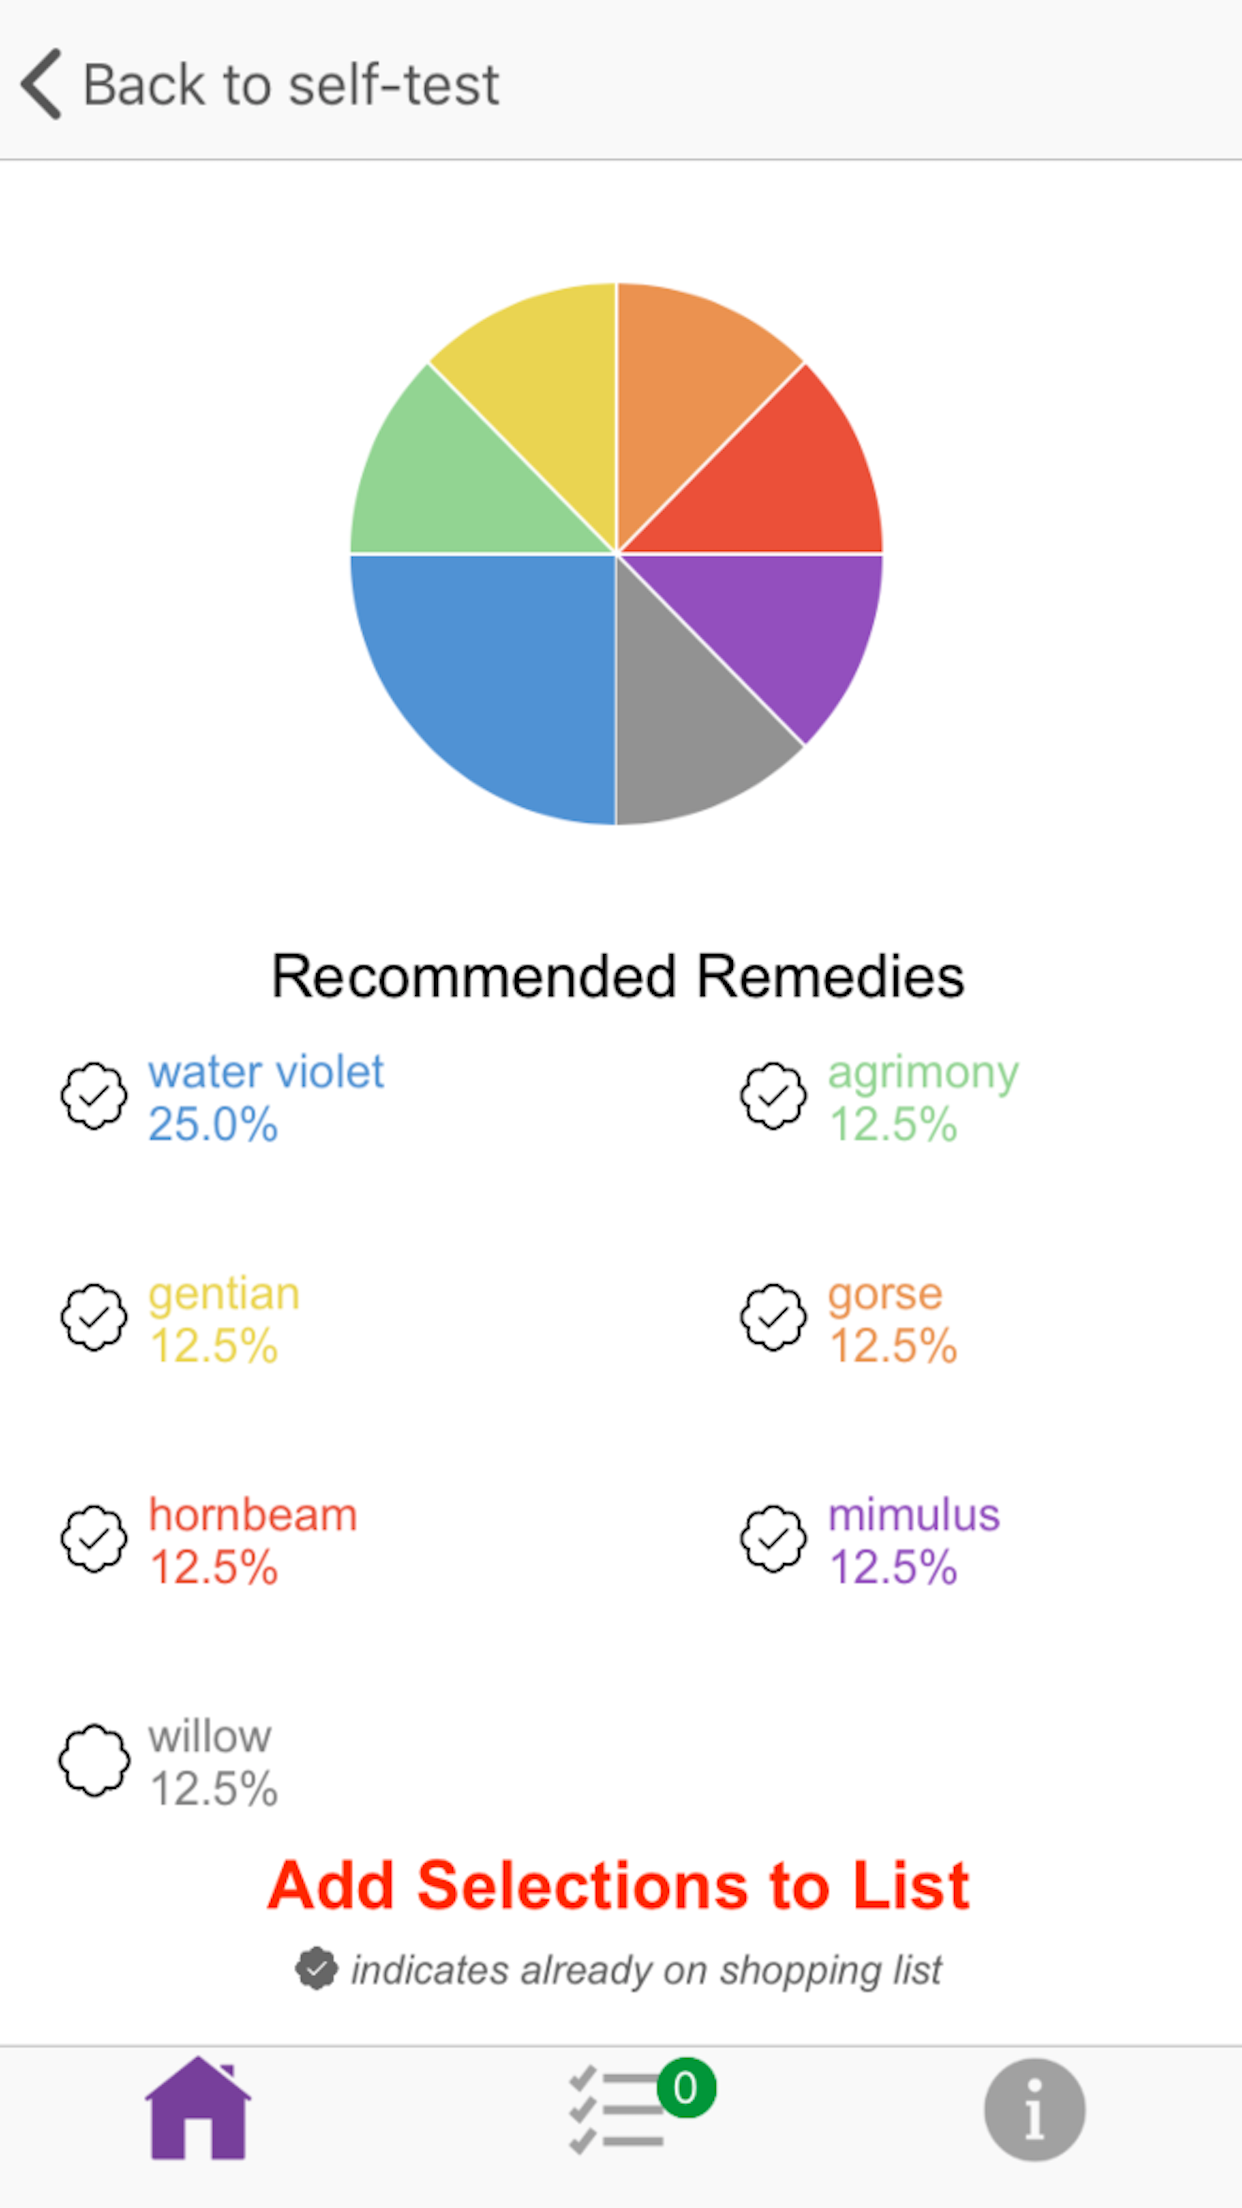 Flower Farmacy: Pie Chart of Recommended Remedies